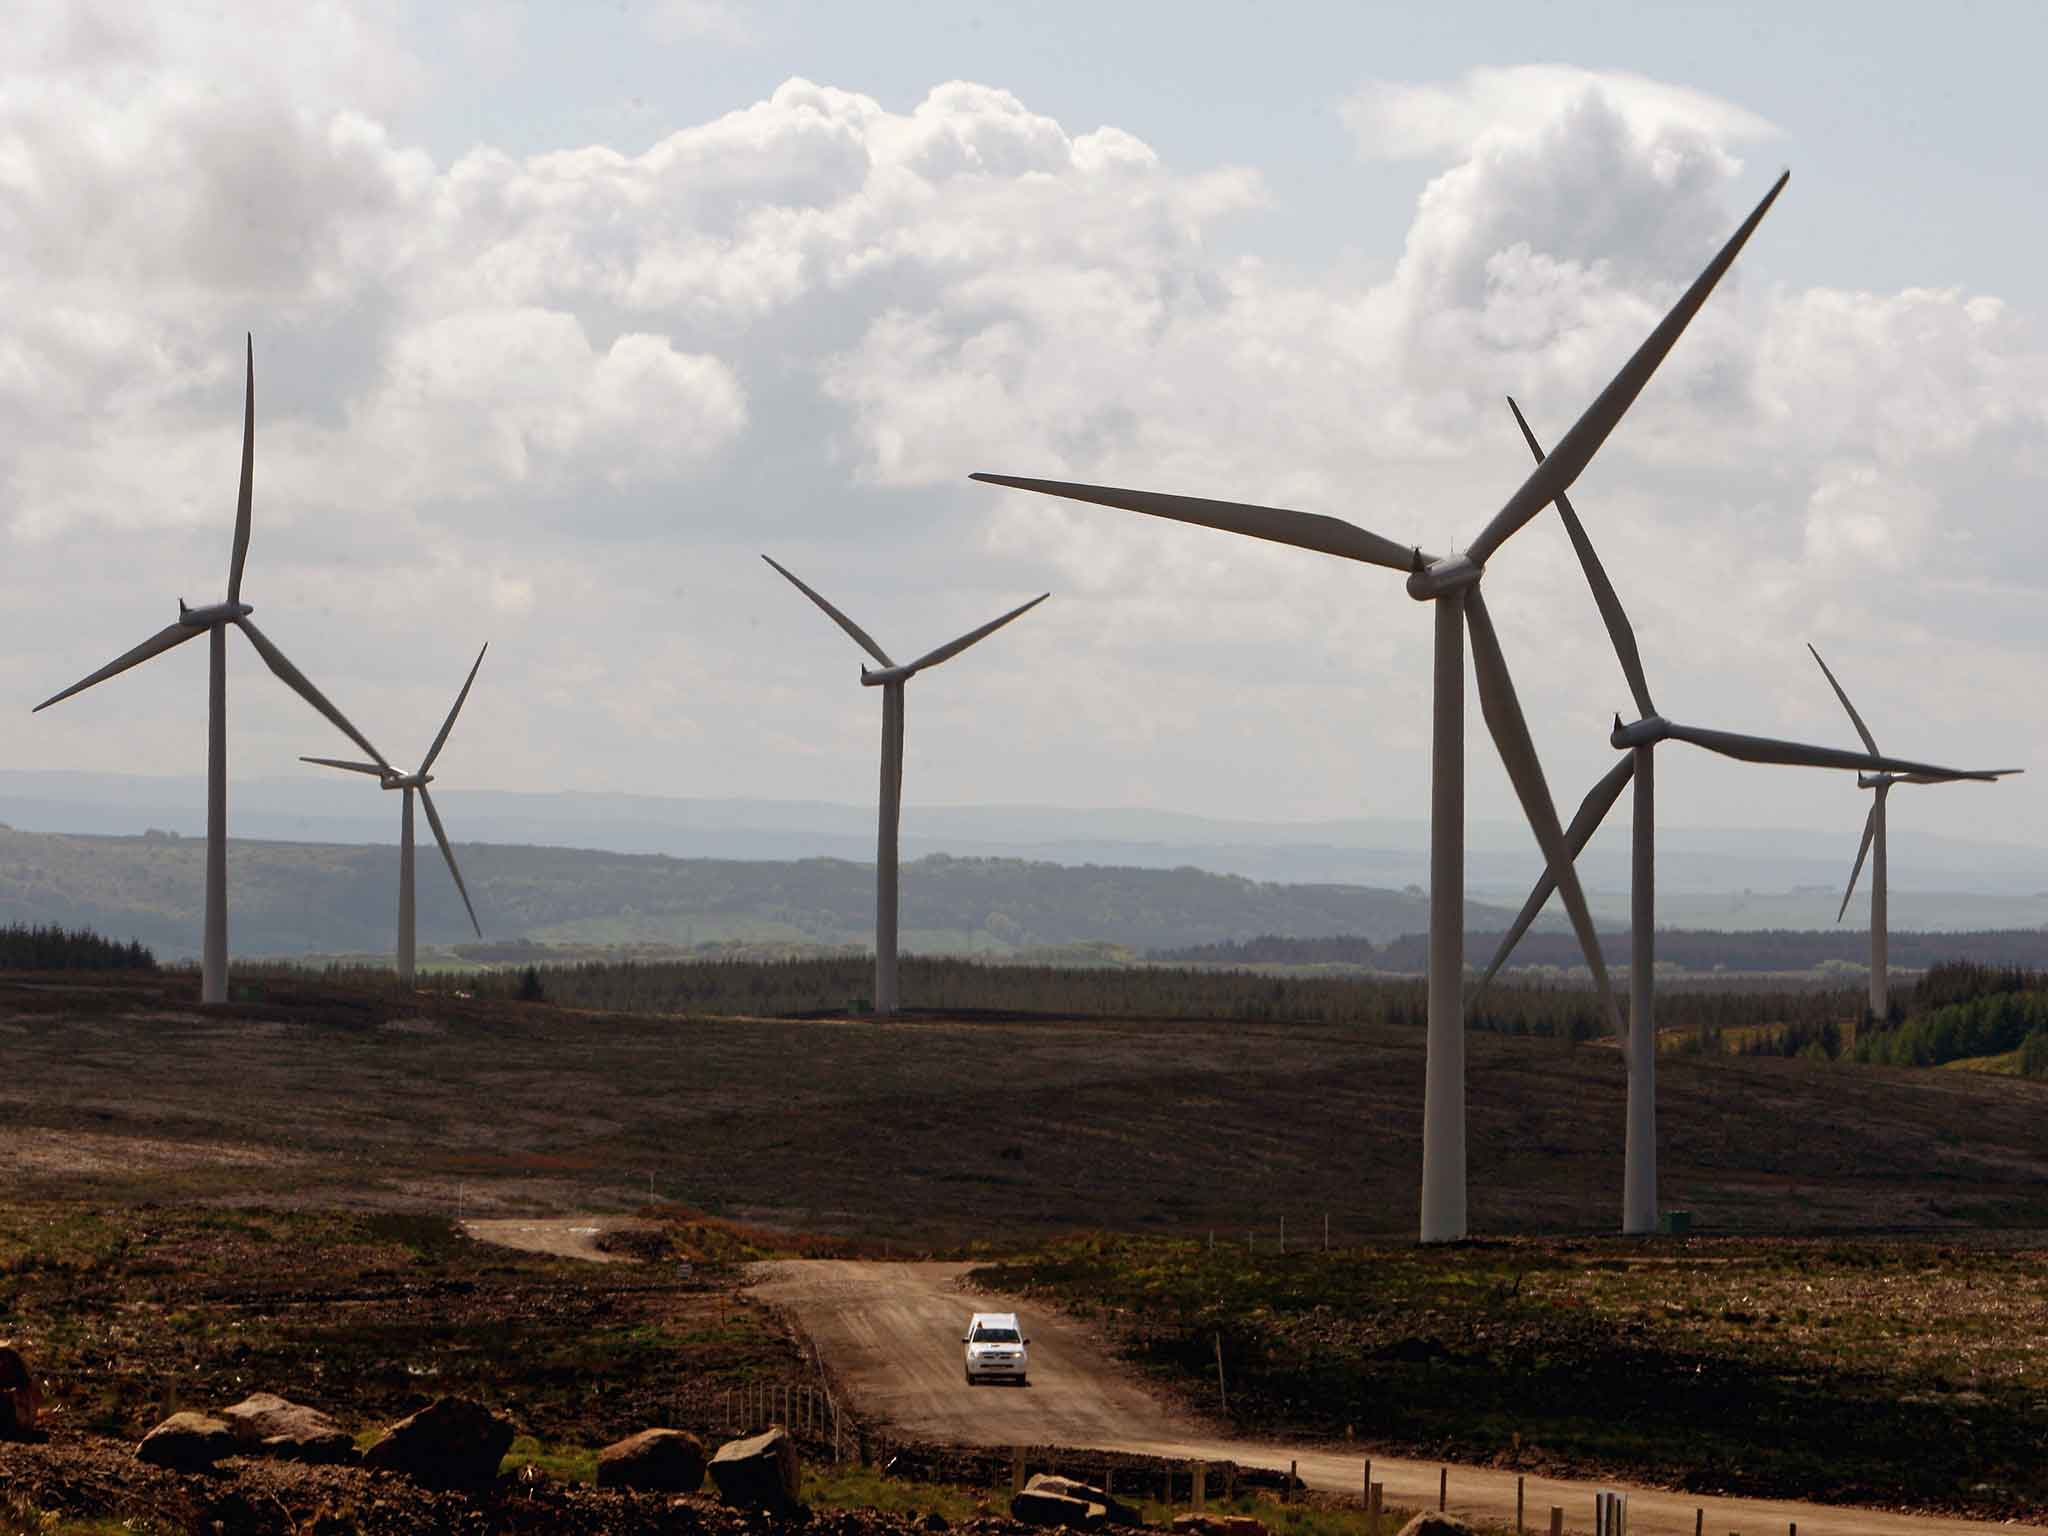 Scottish wind farm projects put at risk by Government subsidy